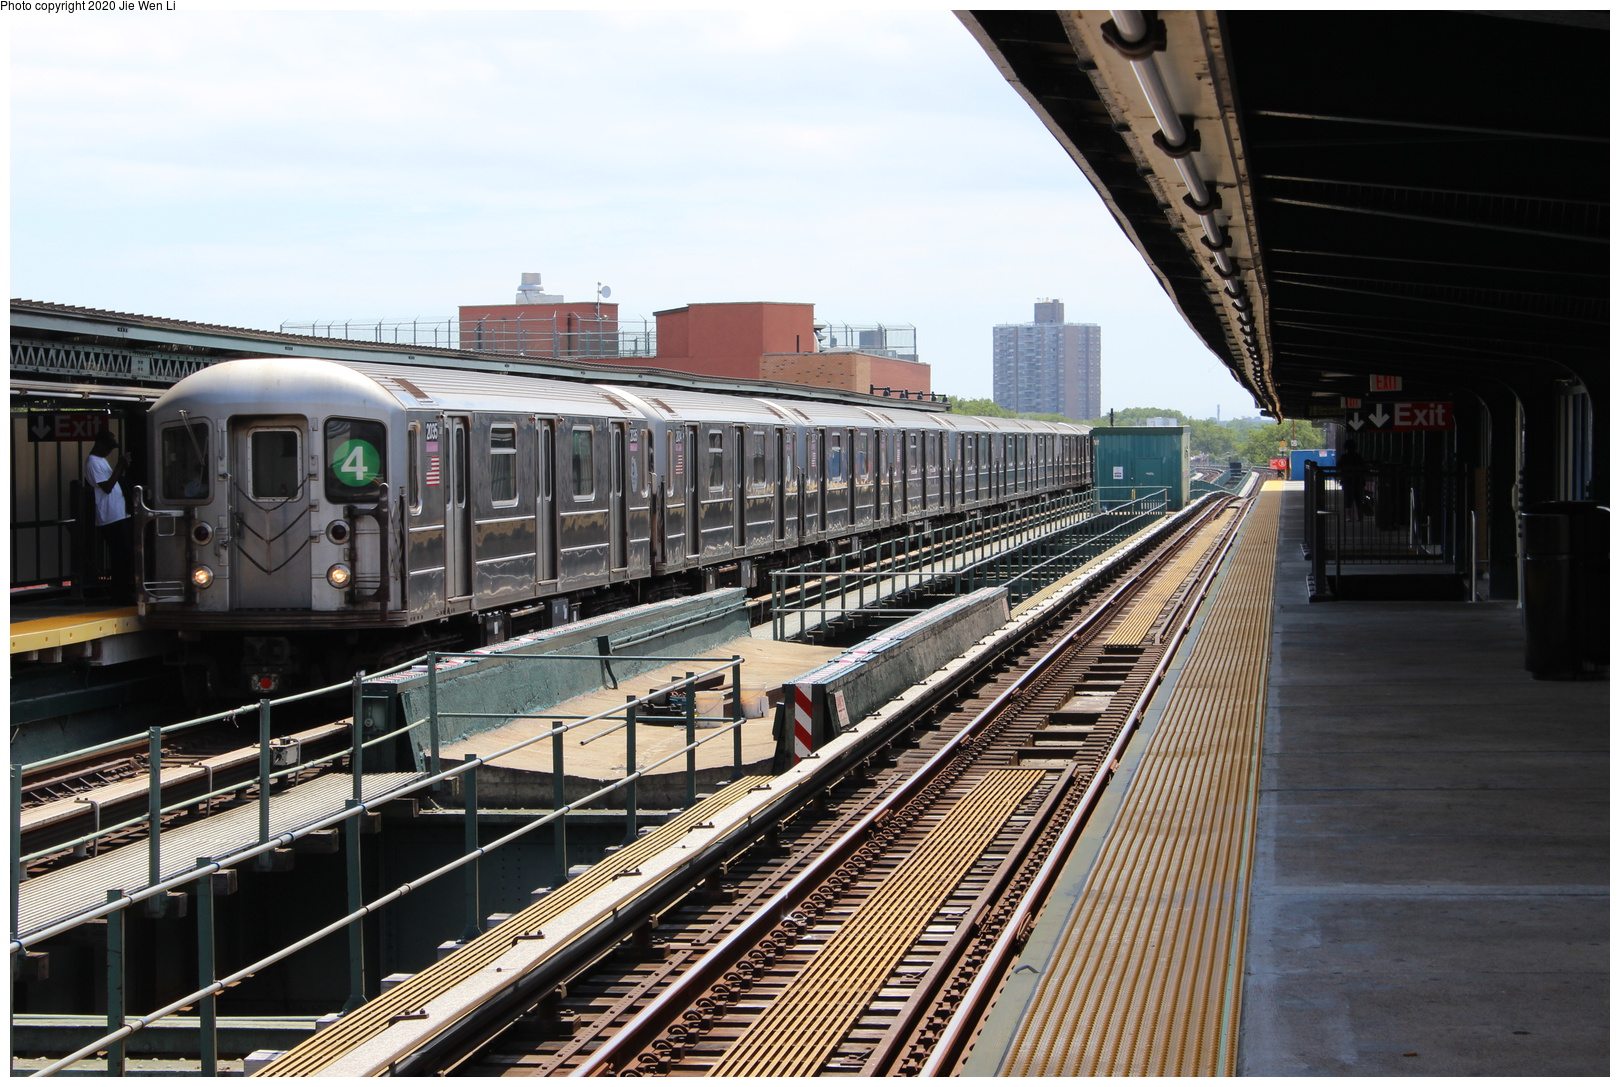 (197k, 1044x692)<br><b>Country:</b> United States<br><b>City:</b> New York<br><b>System:</b> New York City Transit<br><b>Line:</b> BMT Myrtle Avenue Line<br><b>Location:</b> Fresh Pond Road <br><b>Car:</b> BMT Multi  <br><b>Photo by:</b> Joel Shanus<br><b>Viewed (this week/total):</b> 1 / 1142